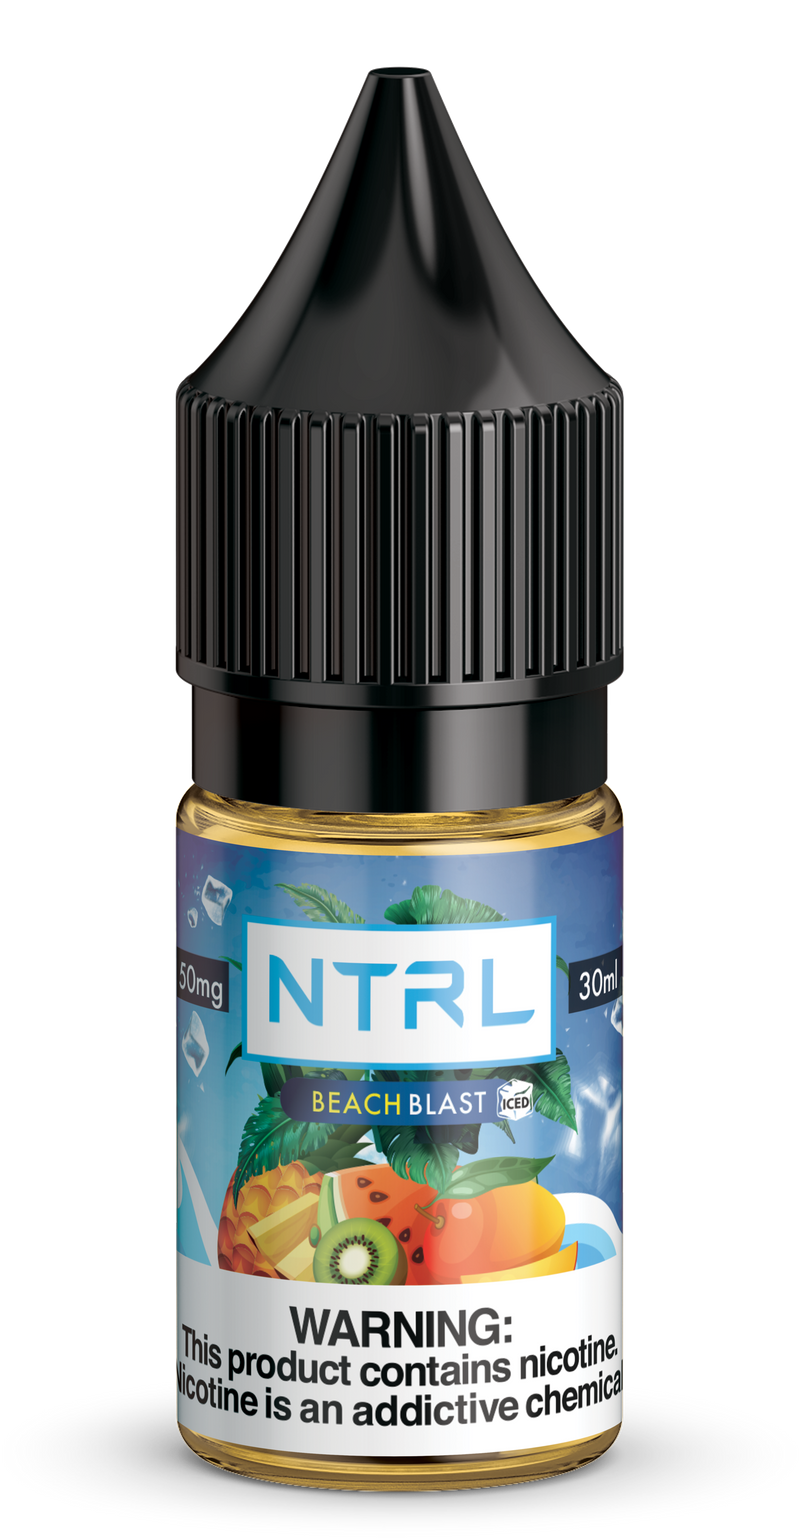 NTRL - Beach Blast ICE [Salt Nic] (30ML)